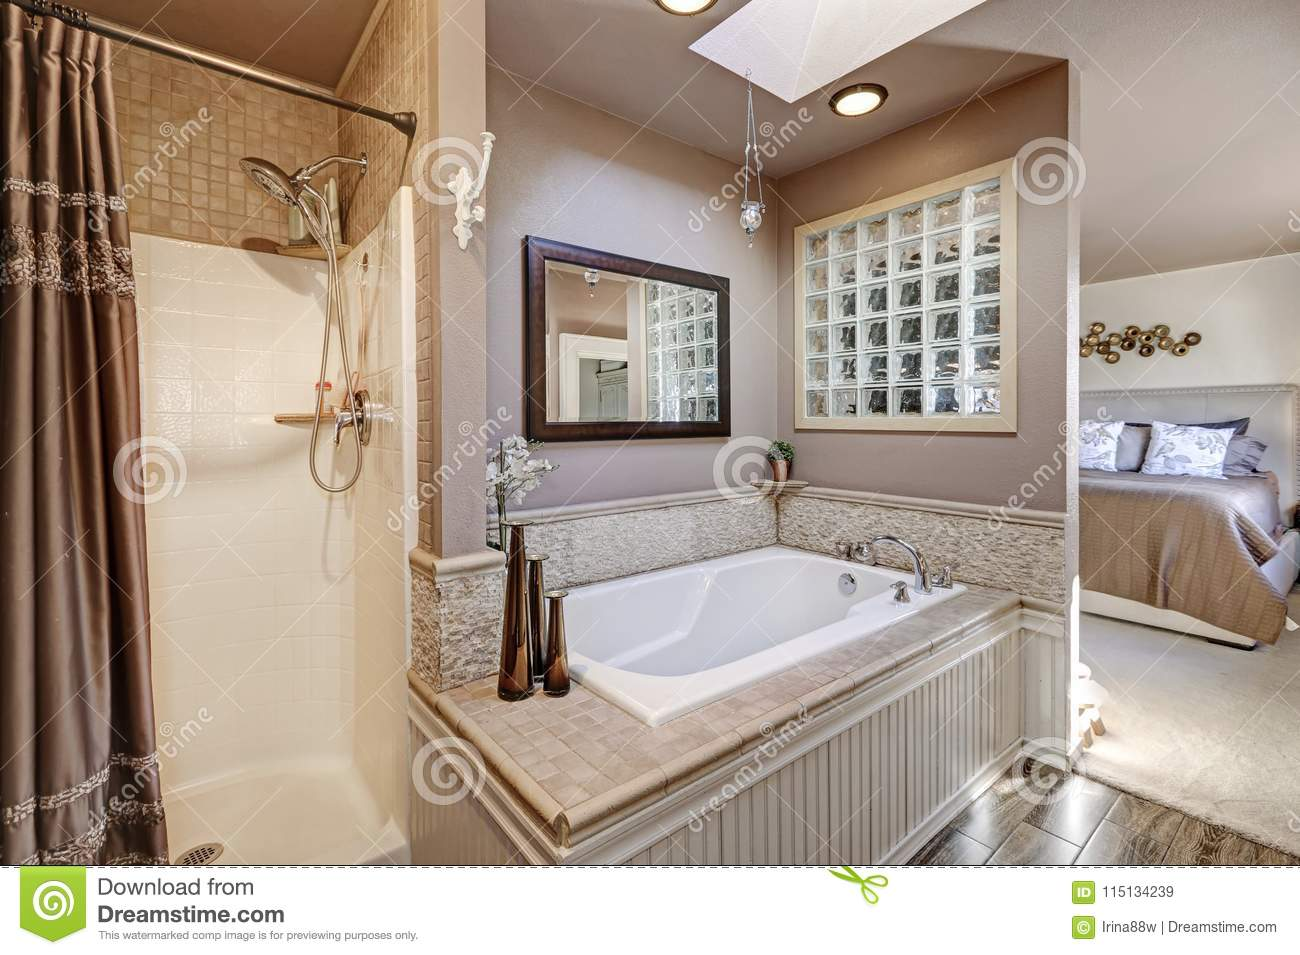 Chic Bathroom With Modern Spa Like Drop In Tub Natural Stone Tile Surround And Shower Brown Curtain Northwest USA